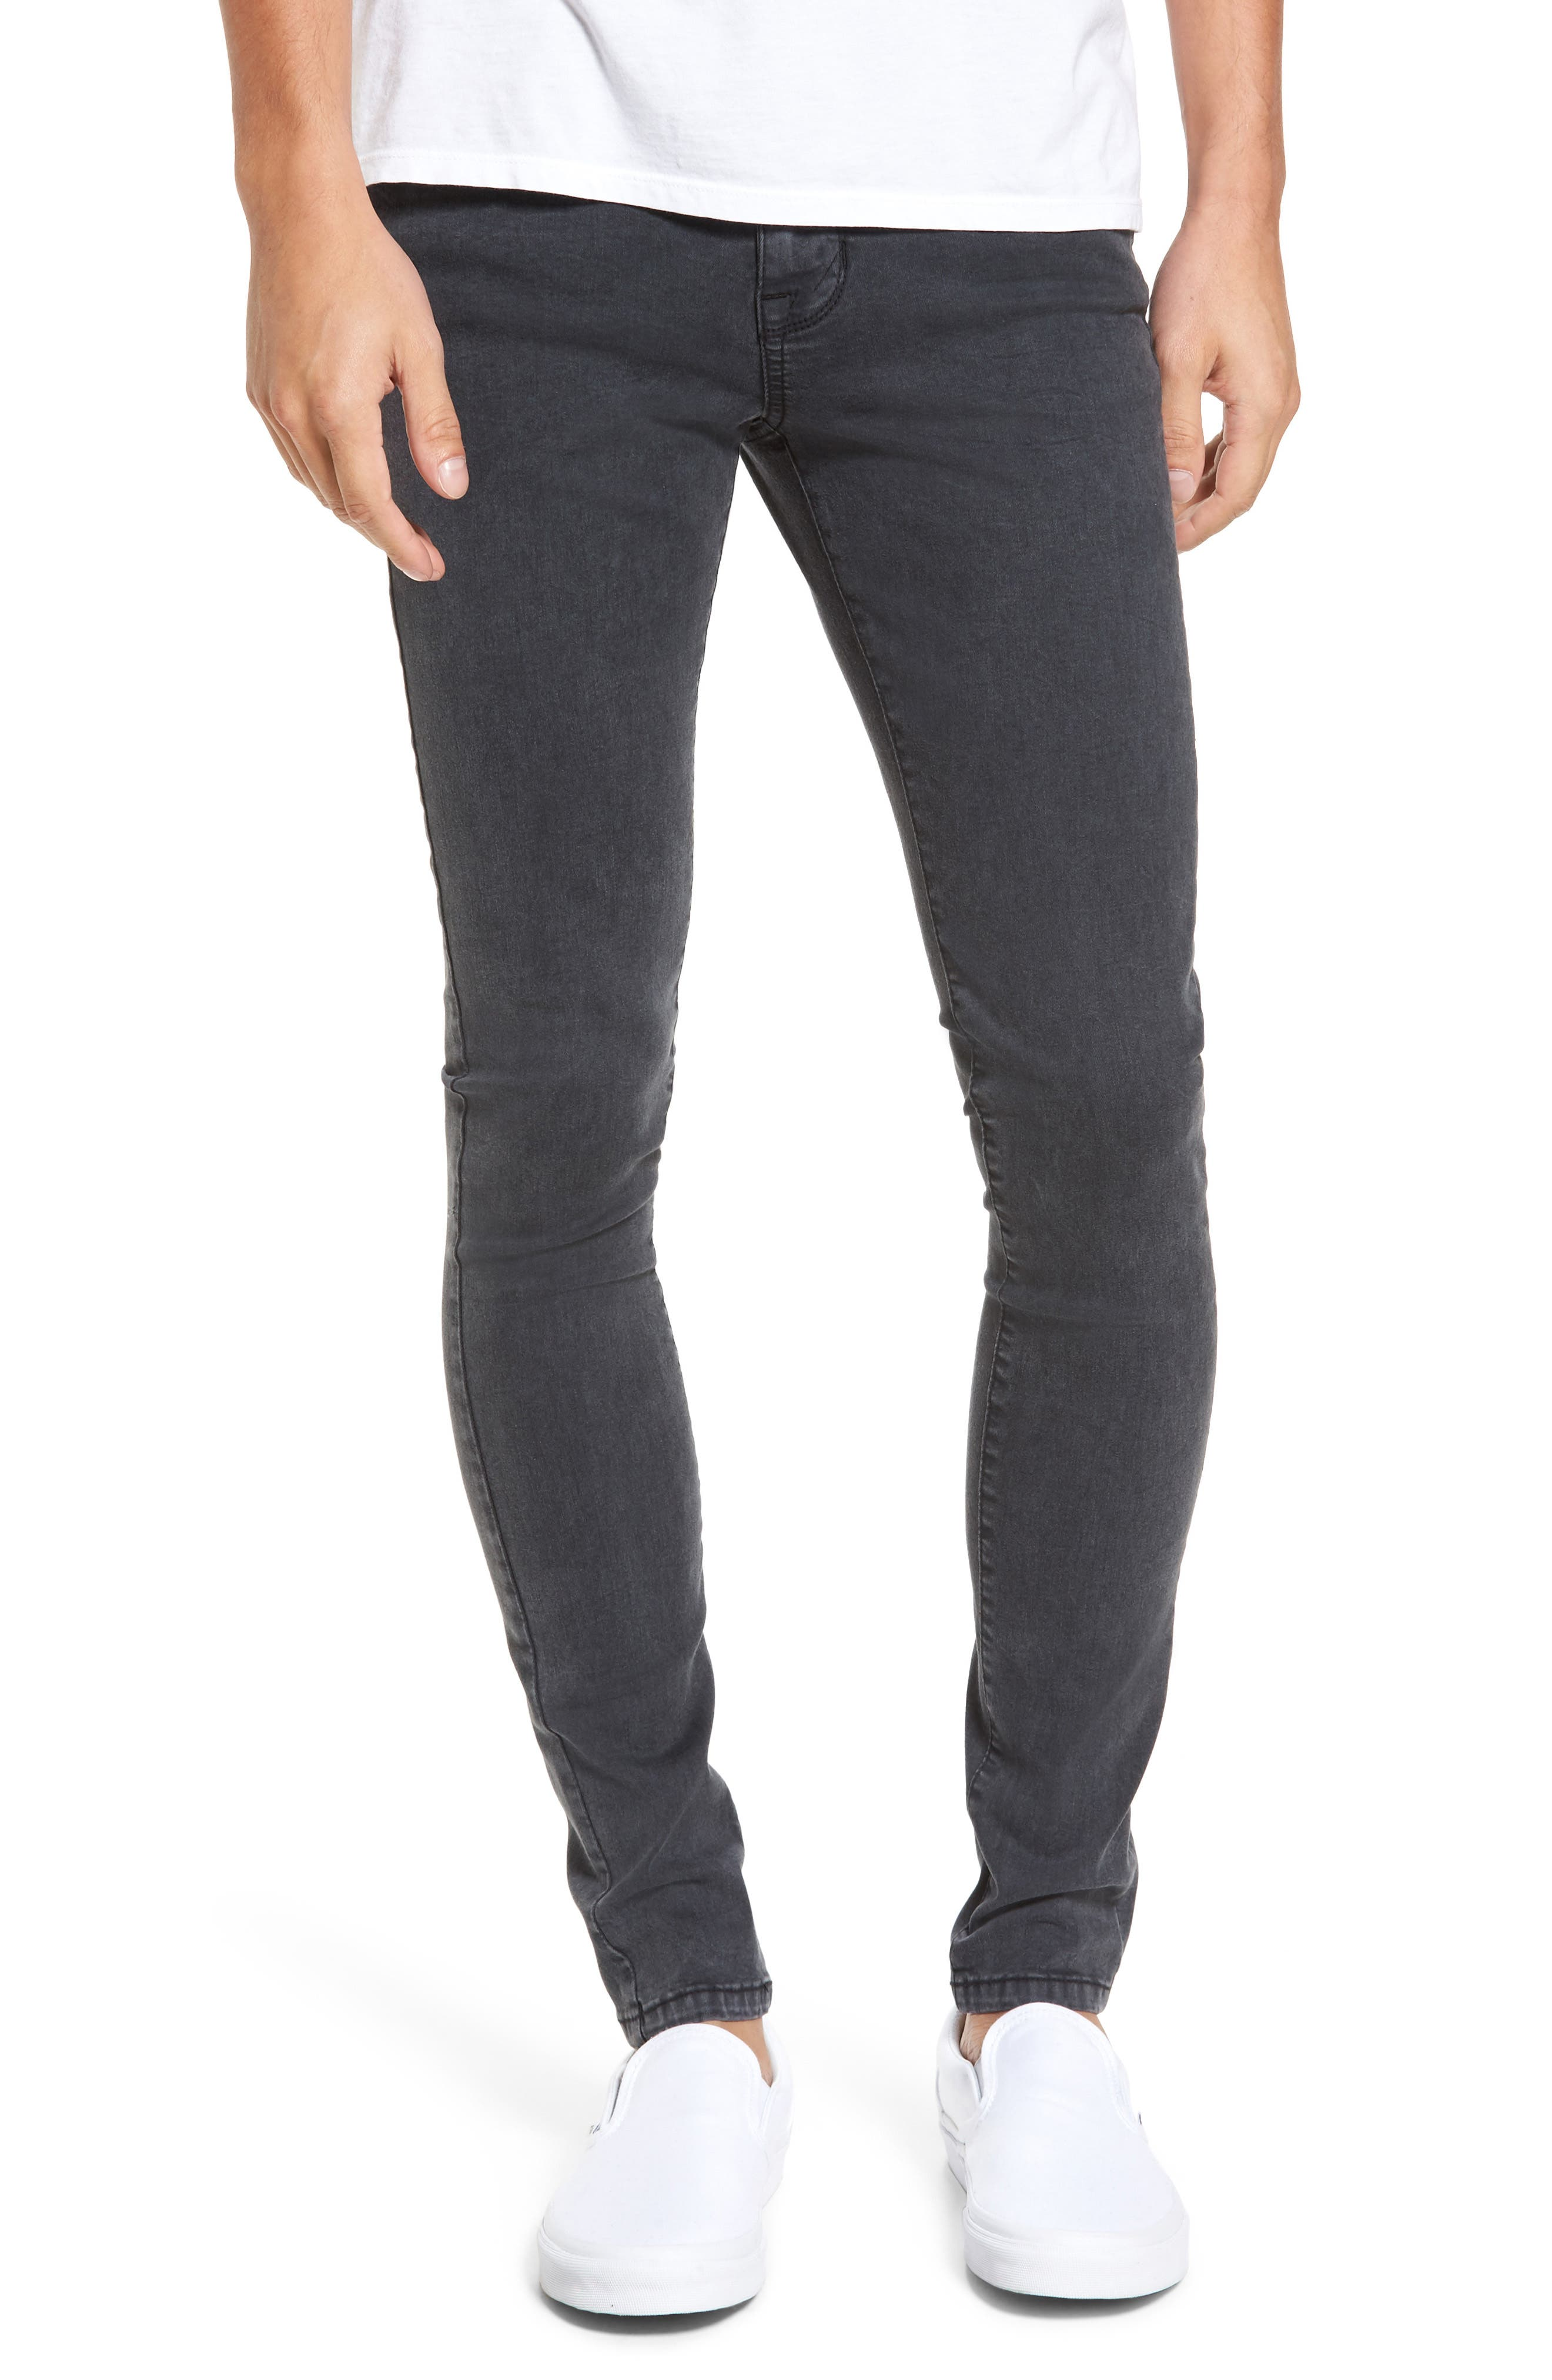 Leroy Slim Fit Jeans,                         Main,                         color, Grey Lush